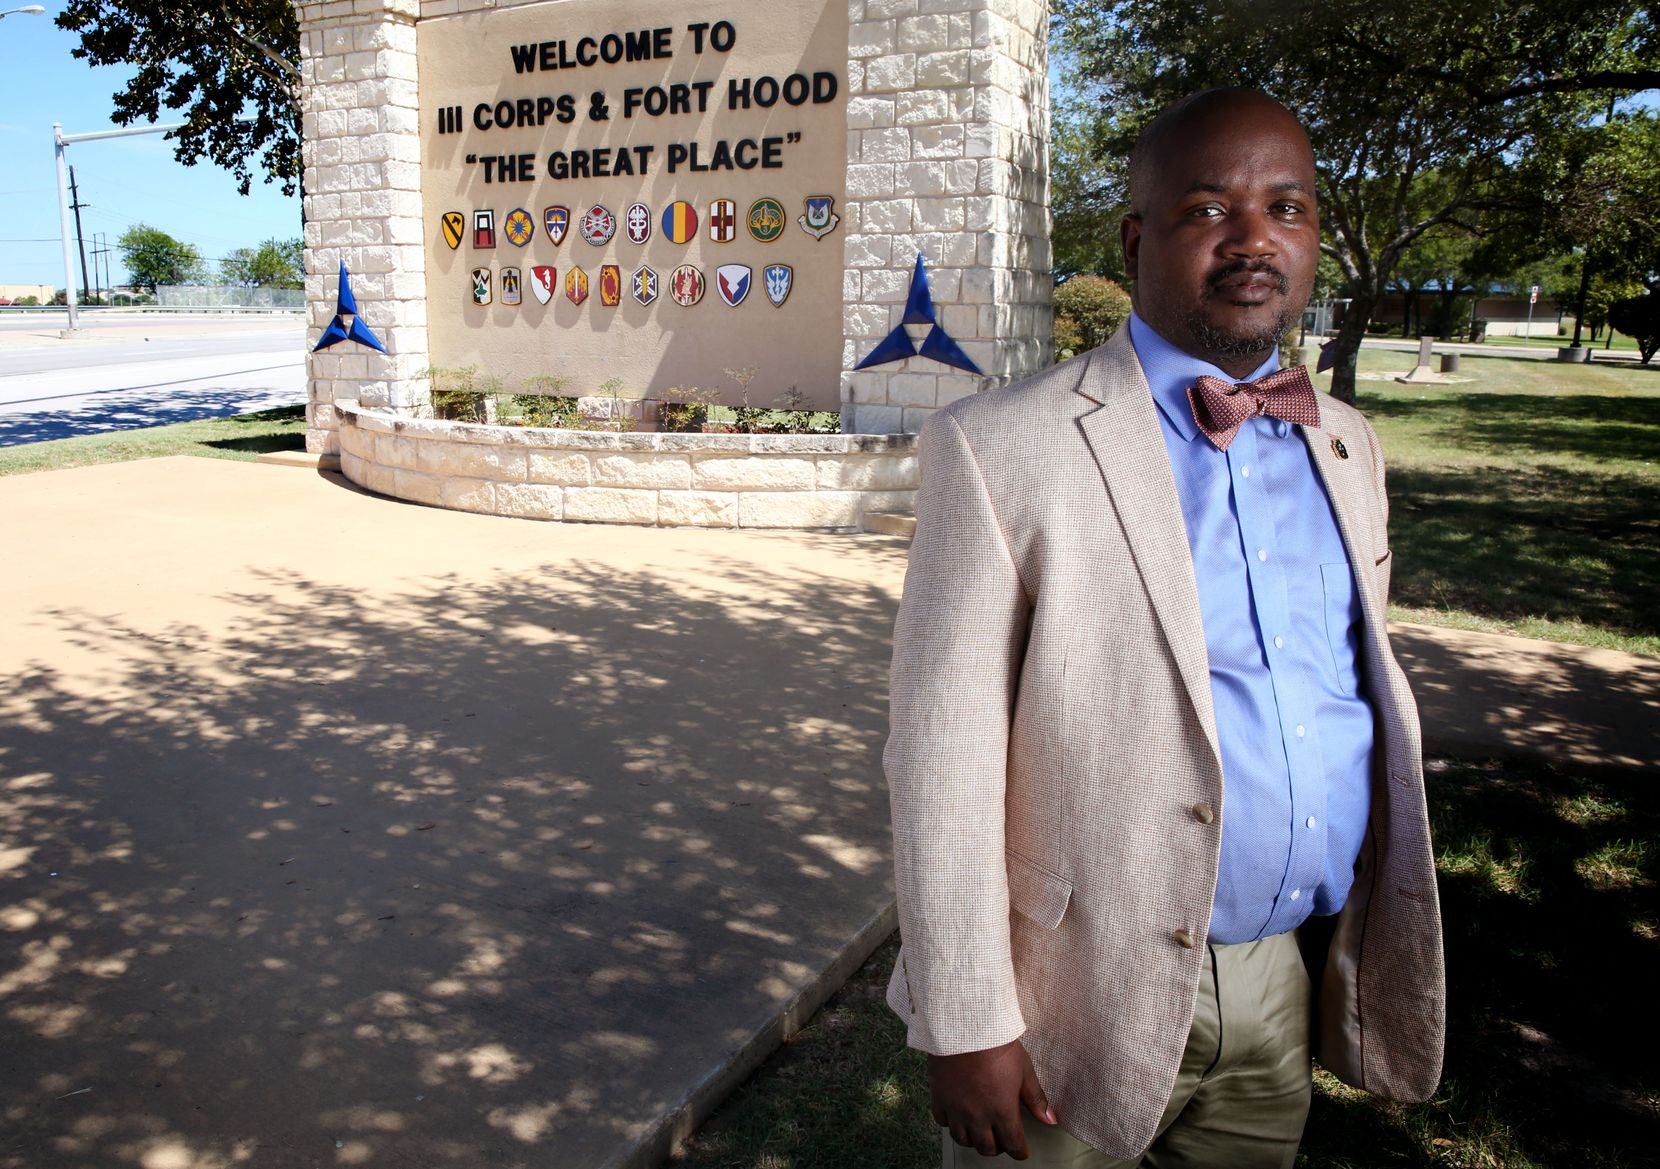 Riakos Adams, secretary of the Killeen chapter of the NAACP, poses outside Fort Hood on Aug. 22, 2017. The post is named for Confederate Gen. John Bell Hood, and the NAACP and others want it renamed.